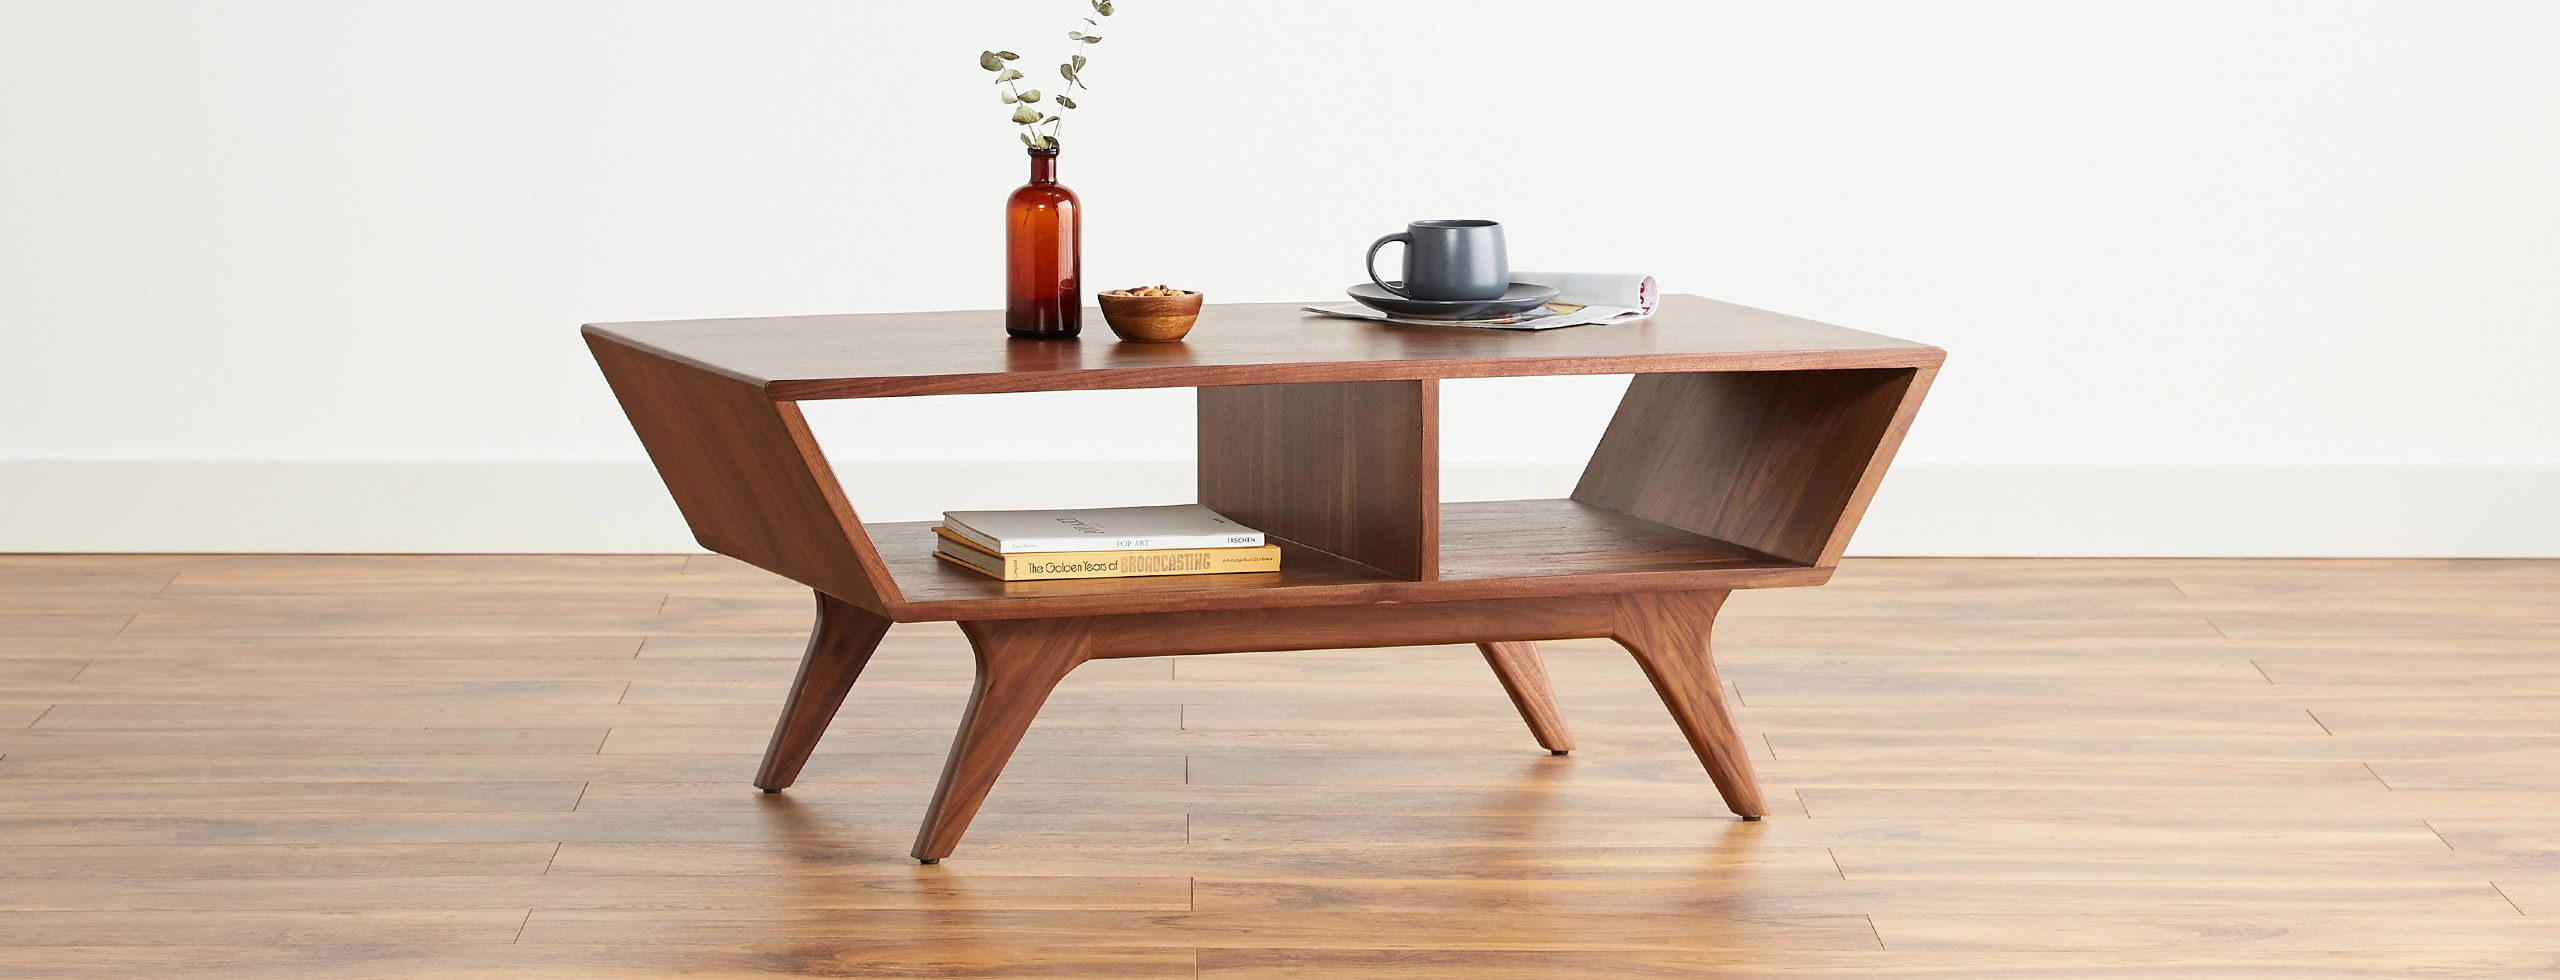 View Our Complete Collection Joybird Mid Century Modern Coffee